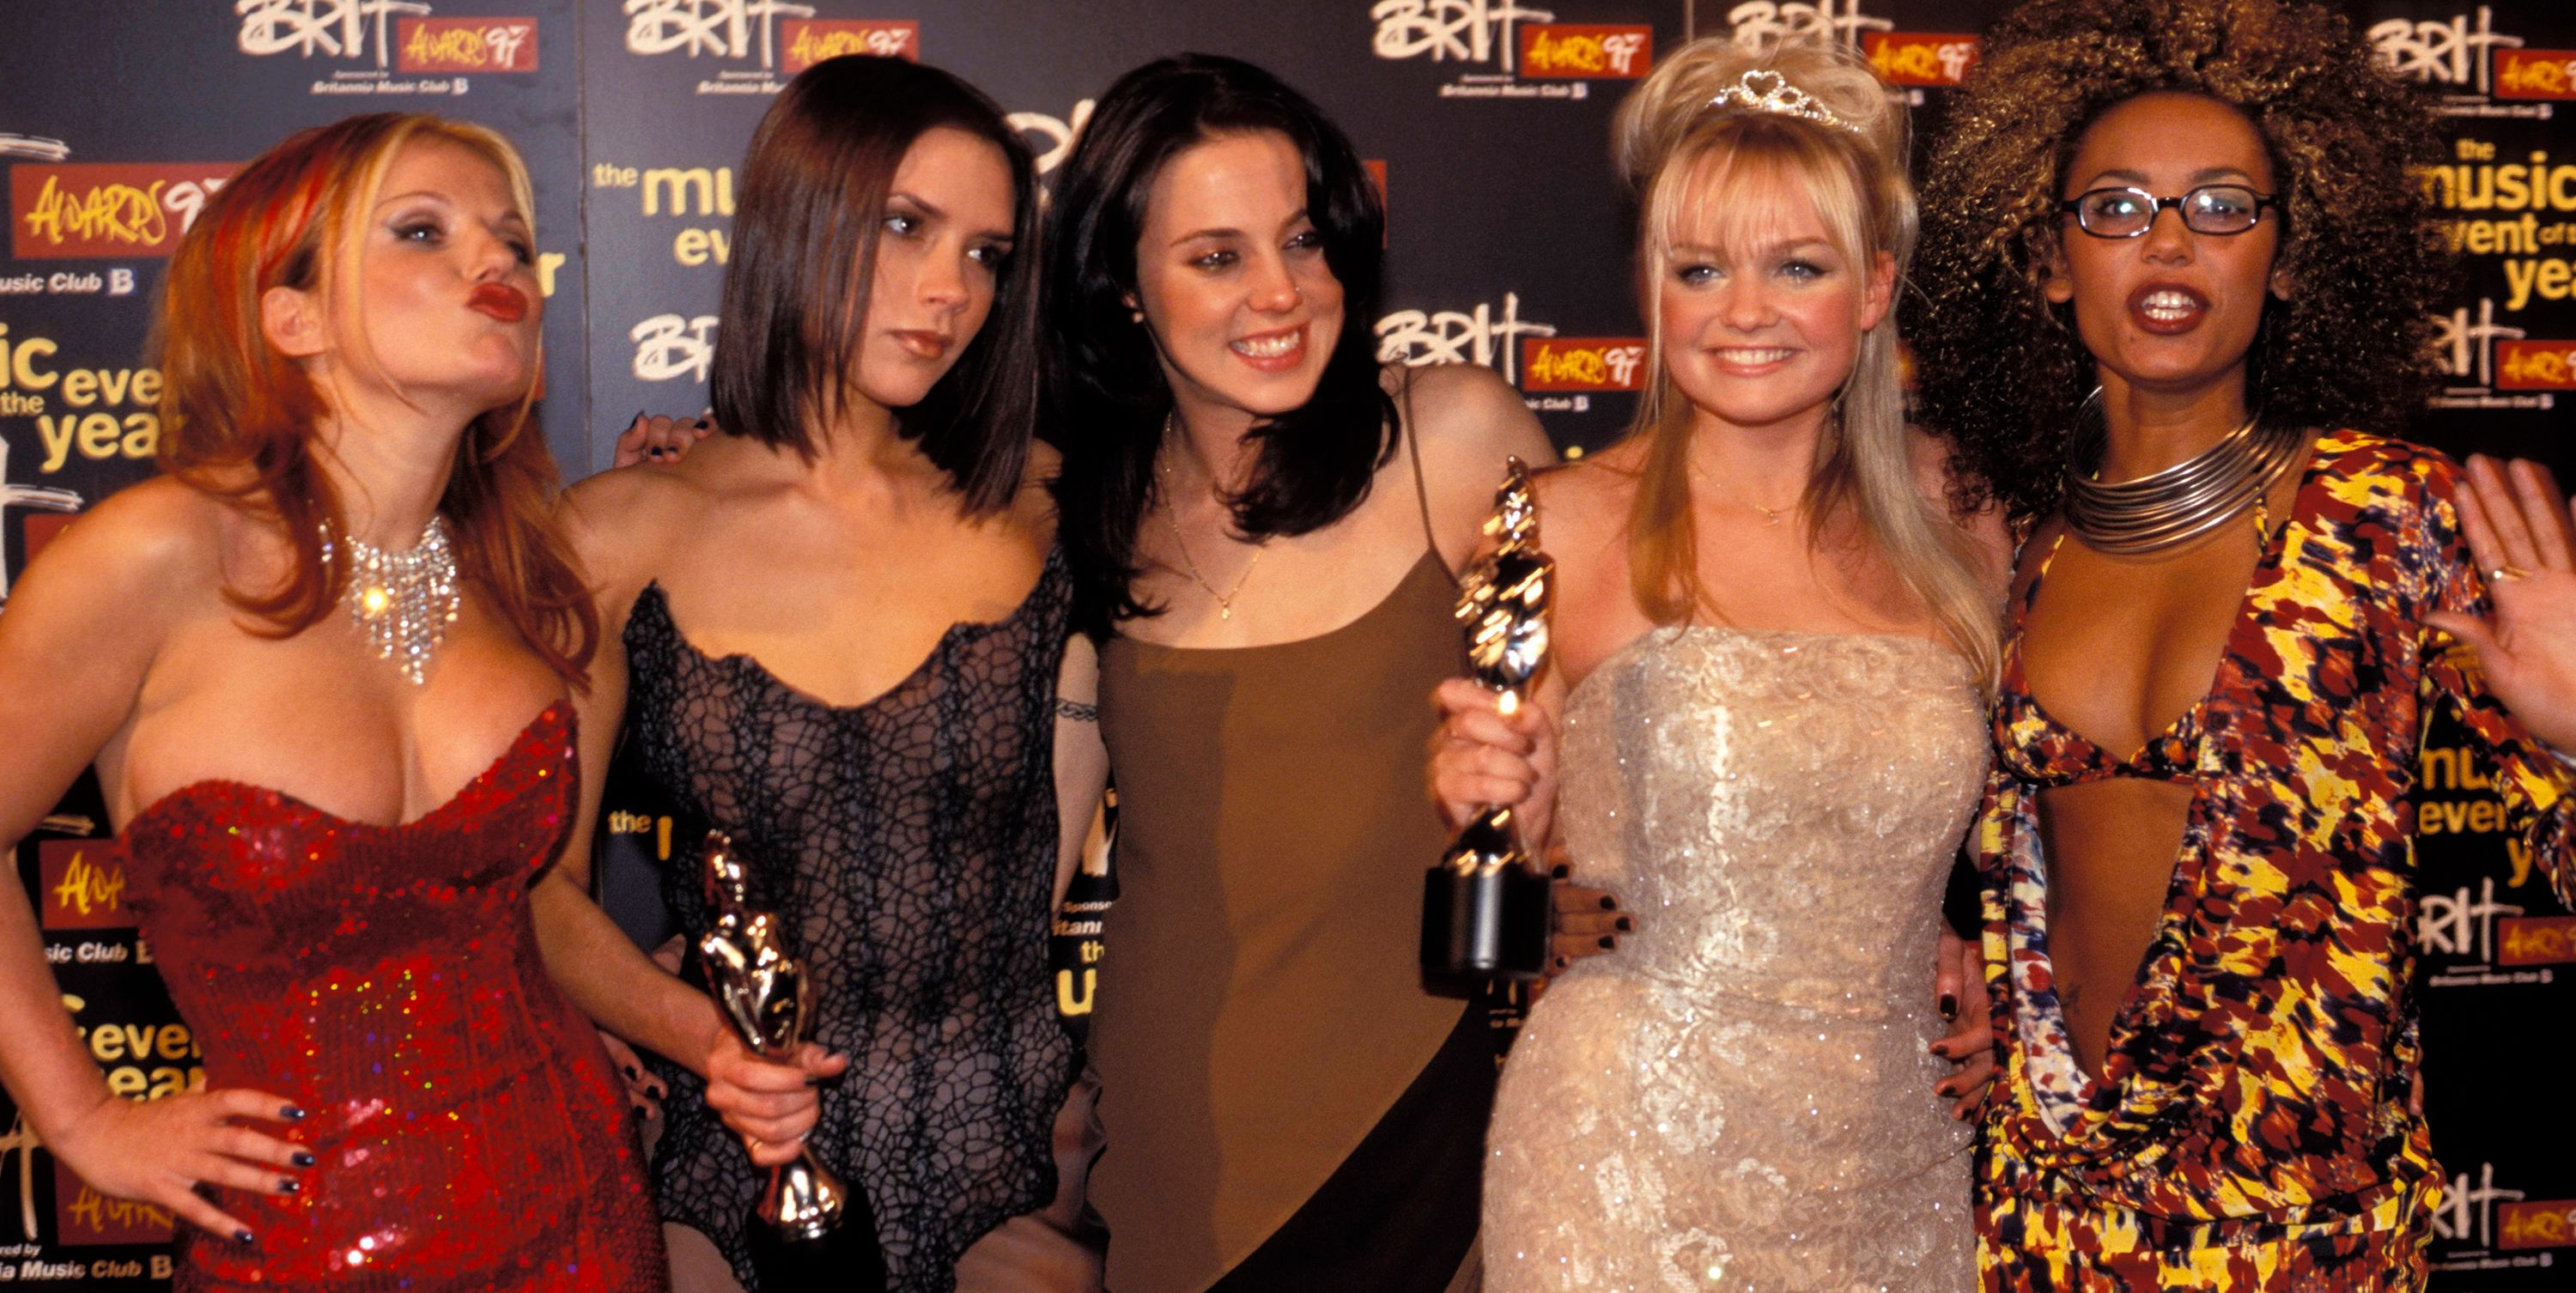 8 of the most iconic Brit Awards moments in history